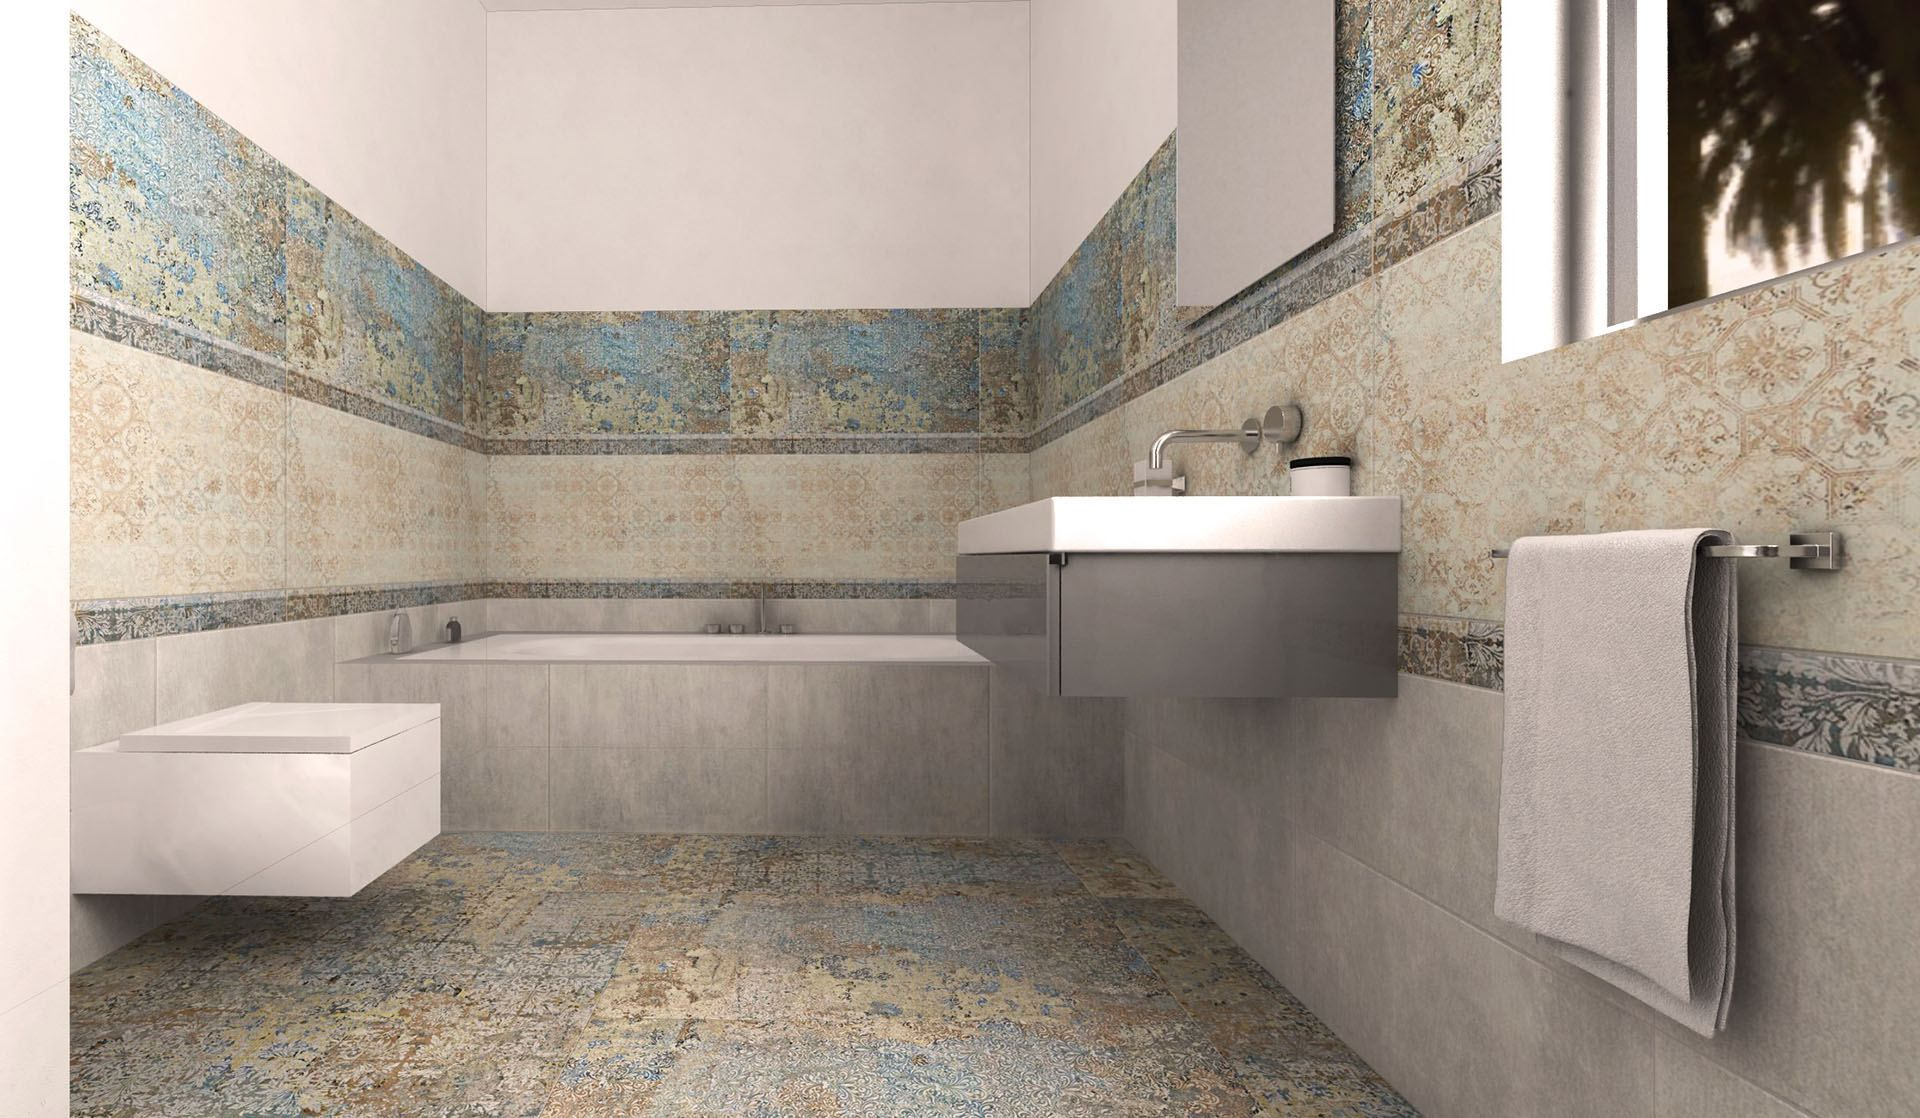 Bagno con aparici carpet vestige bodenbelag bathroom carpet